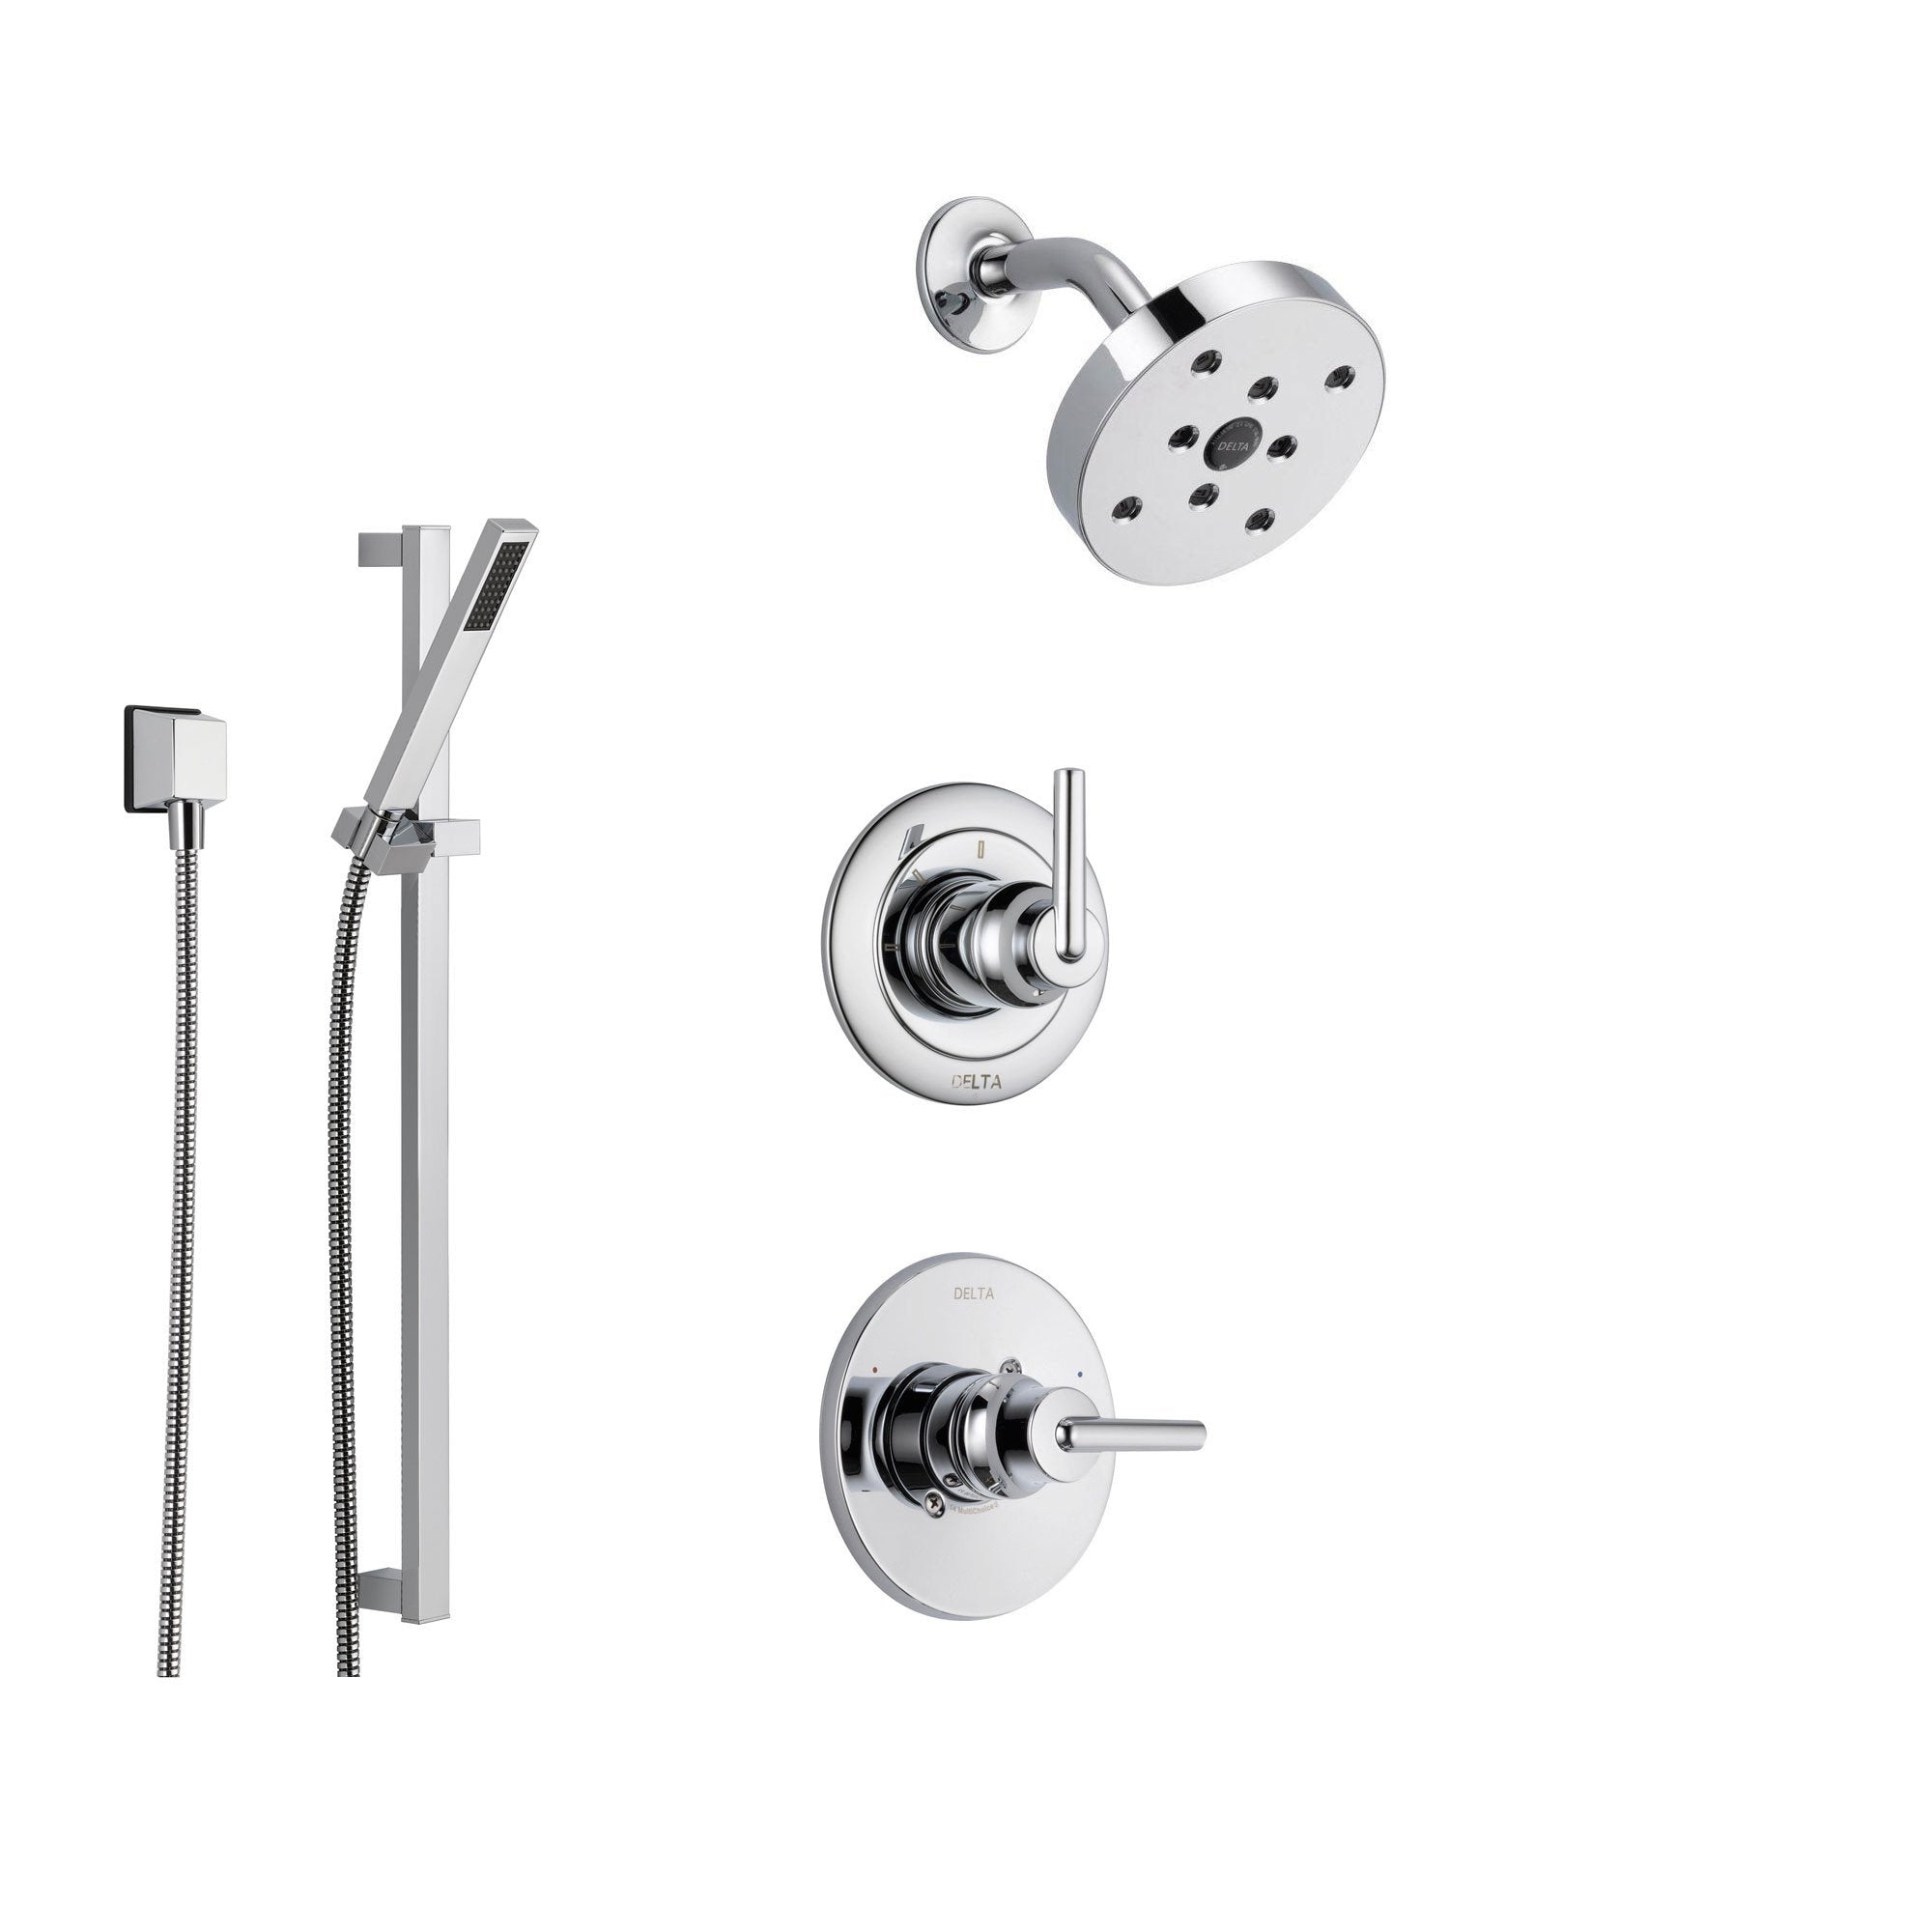 Delta Trinsic Chrome Shower System with Normal Shower Handle, 3-setting Diverter, Modern Round Showerhead, and Handheld Shower SS145981